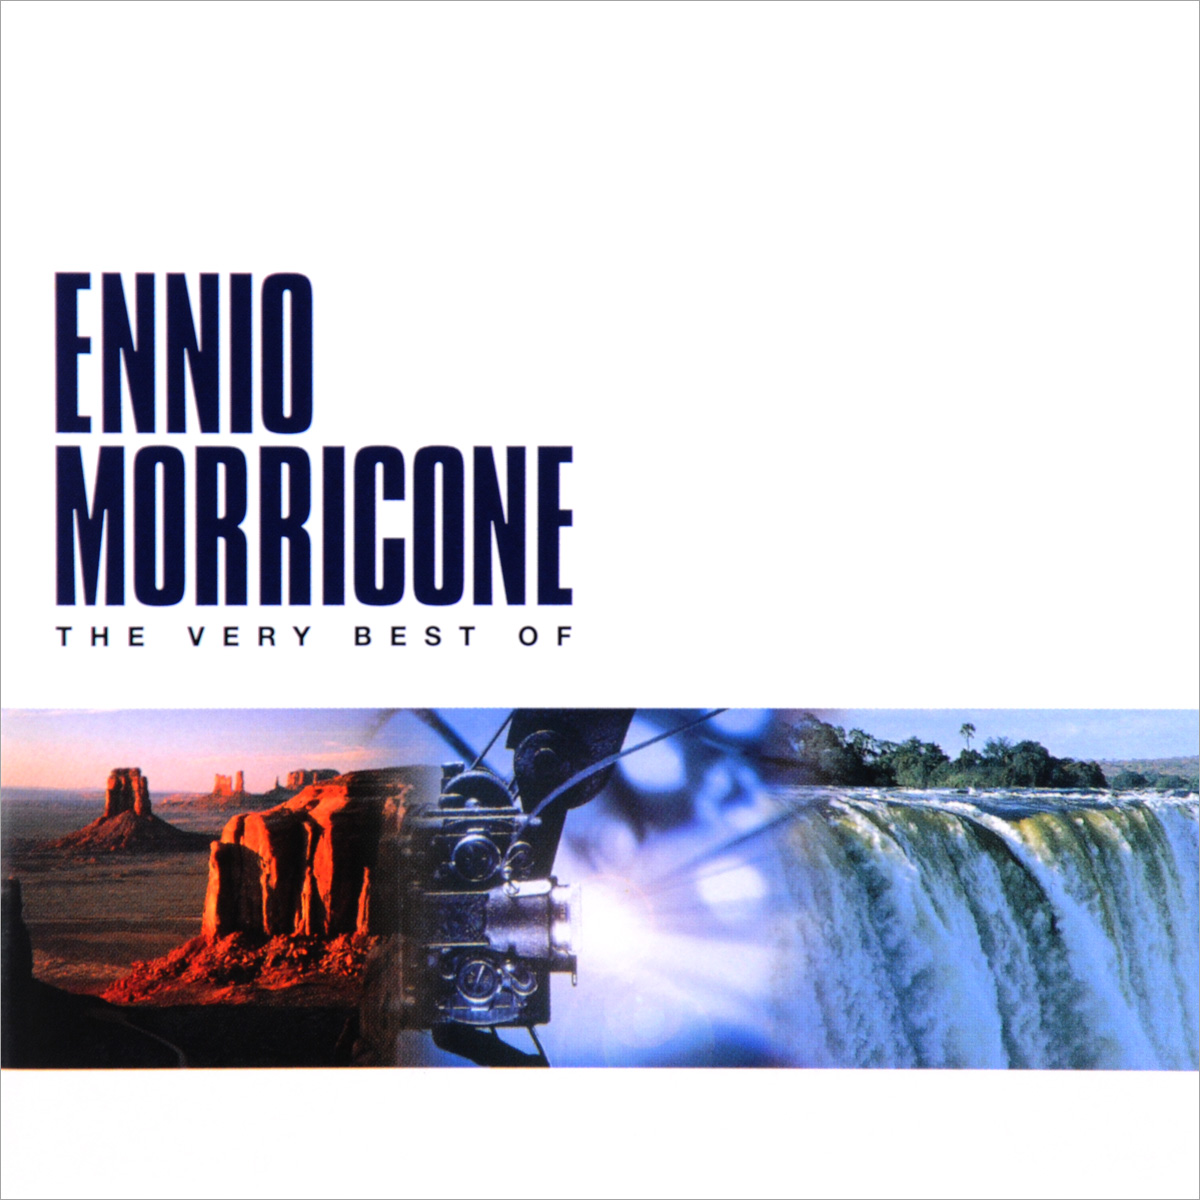 Эннио Морриконе Ennio Morricone. The Very Best Of Ennio Morricone саундтрек саундтрекennio morricone the mission 180 gr